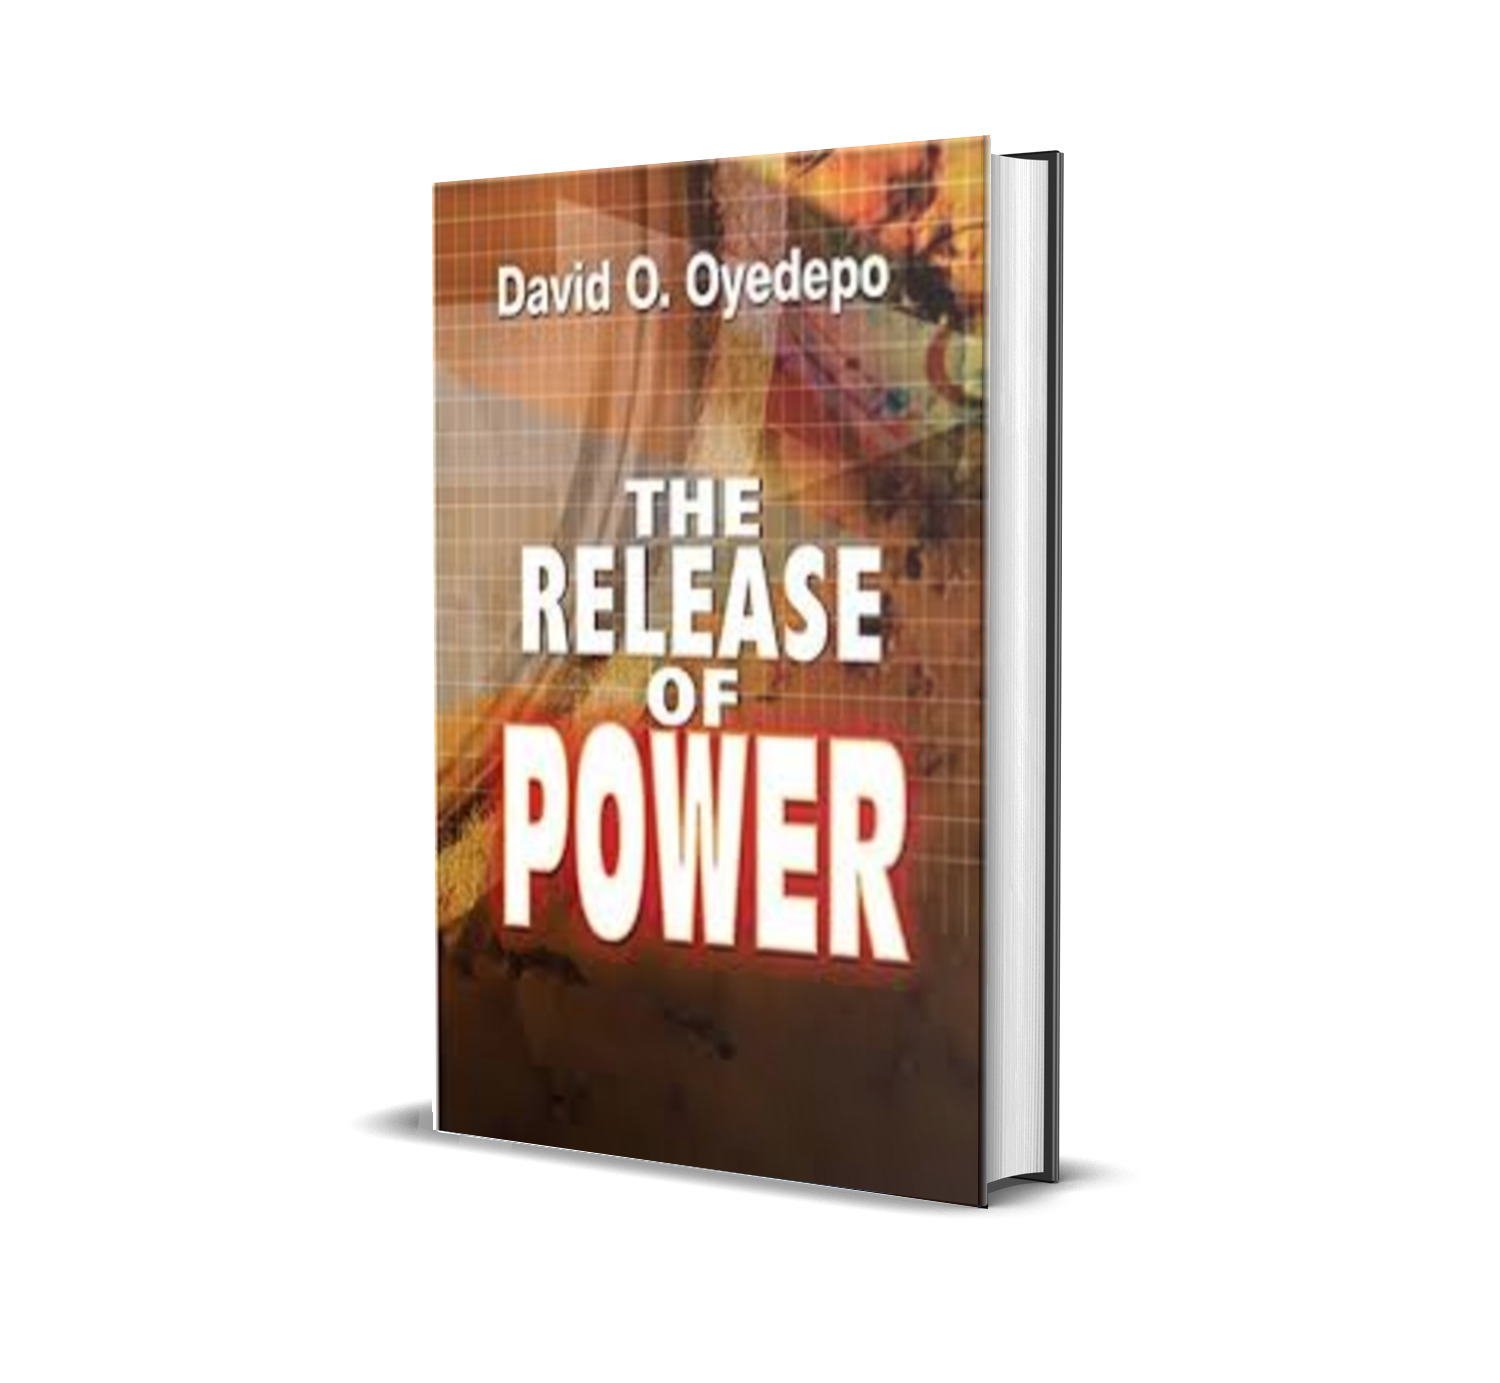 THE RELEASE OF POWER DAVID OYEDEPO